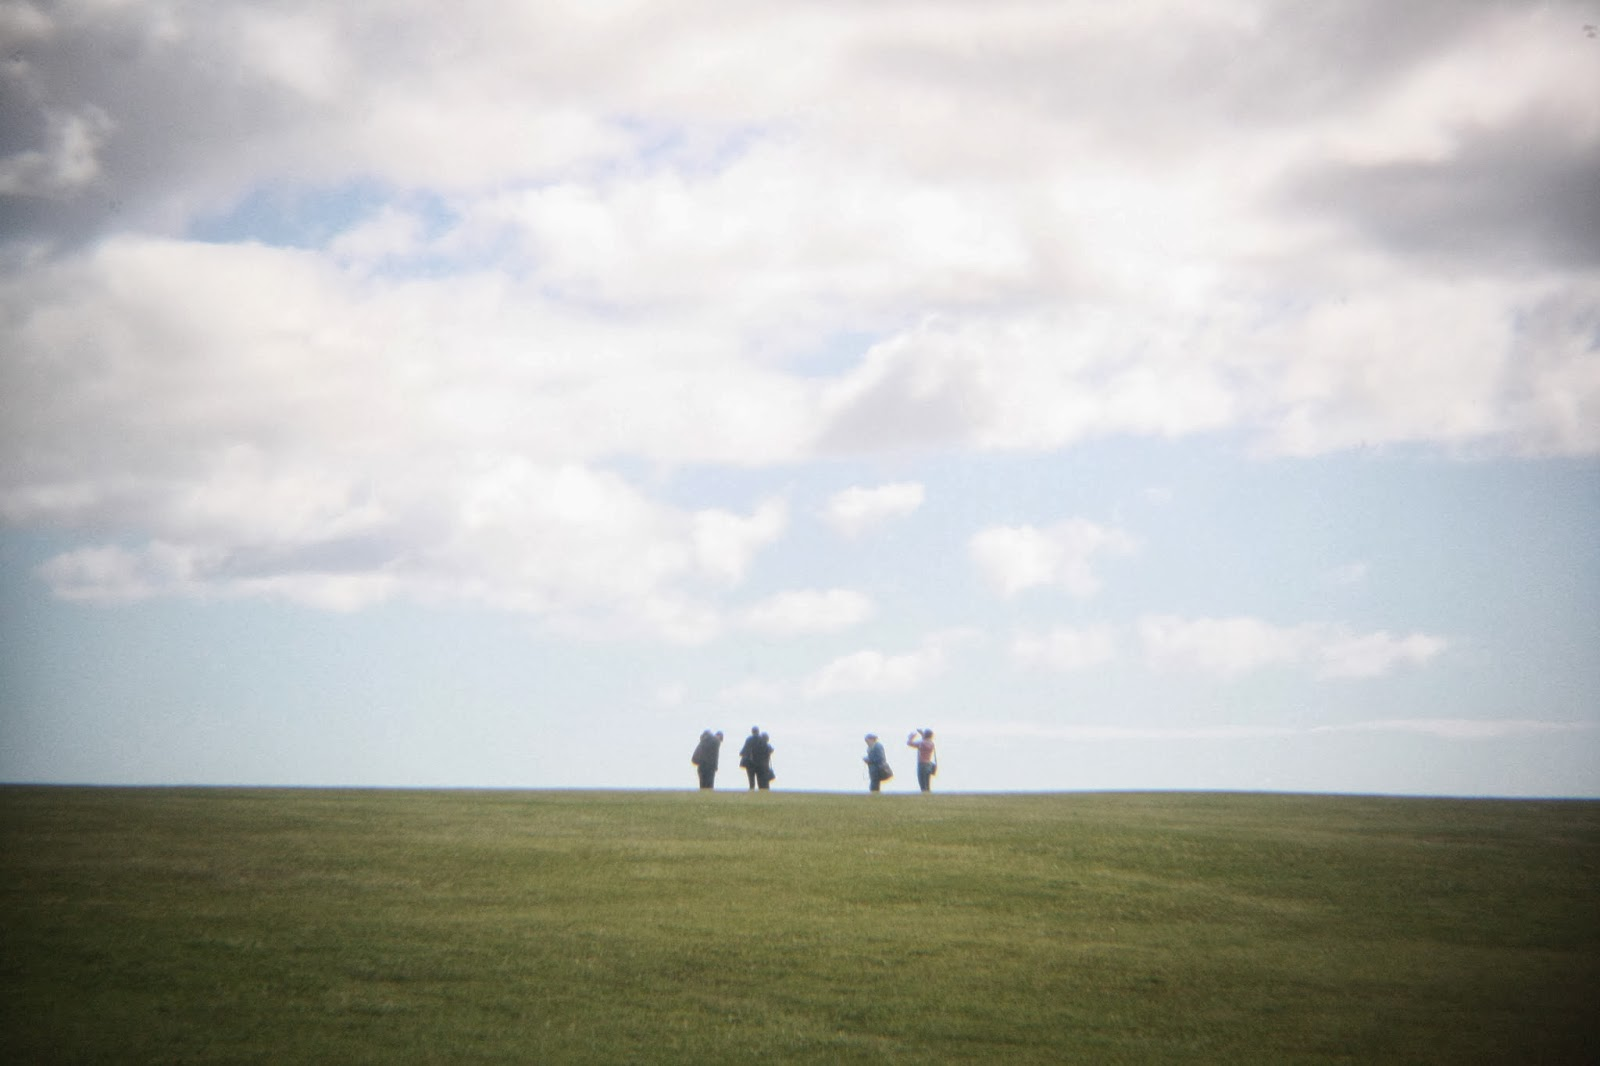 Four figures on a hill contemplate the (out of frame) flagpole at Waitangi.